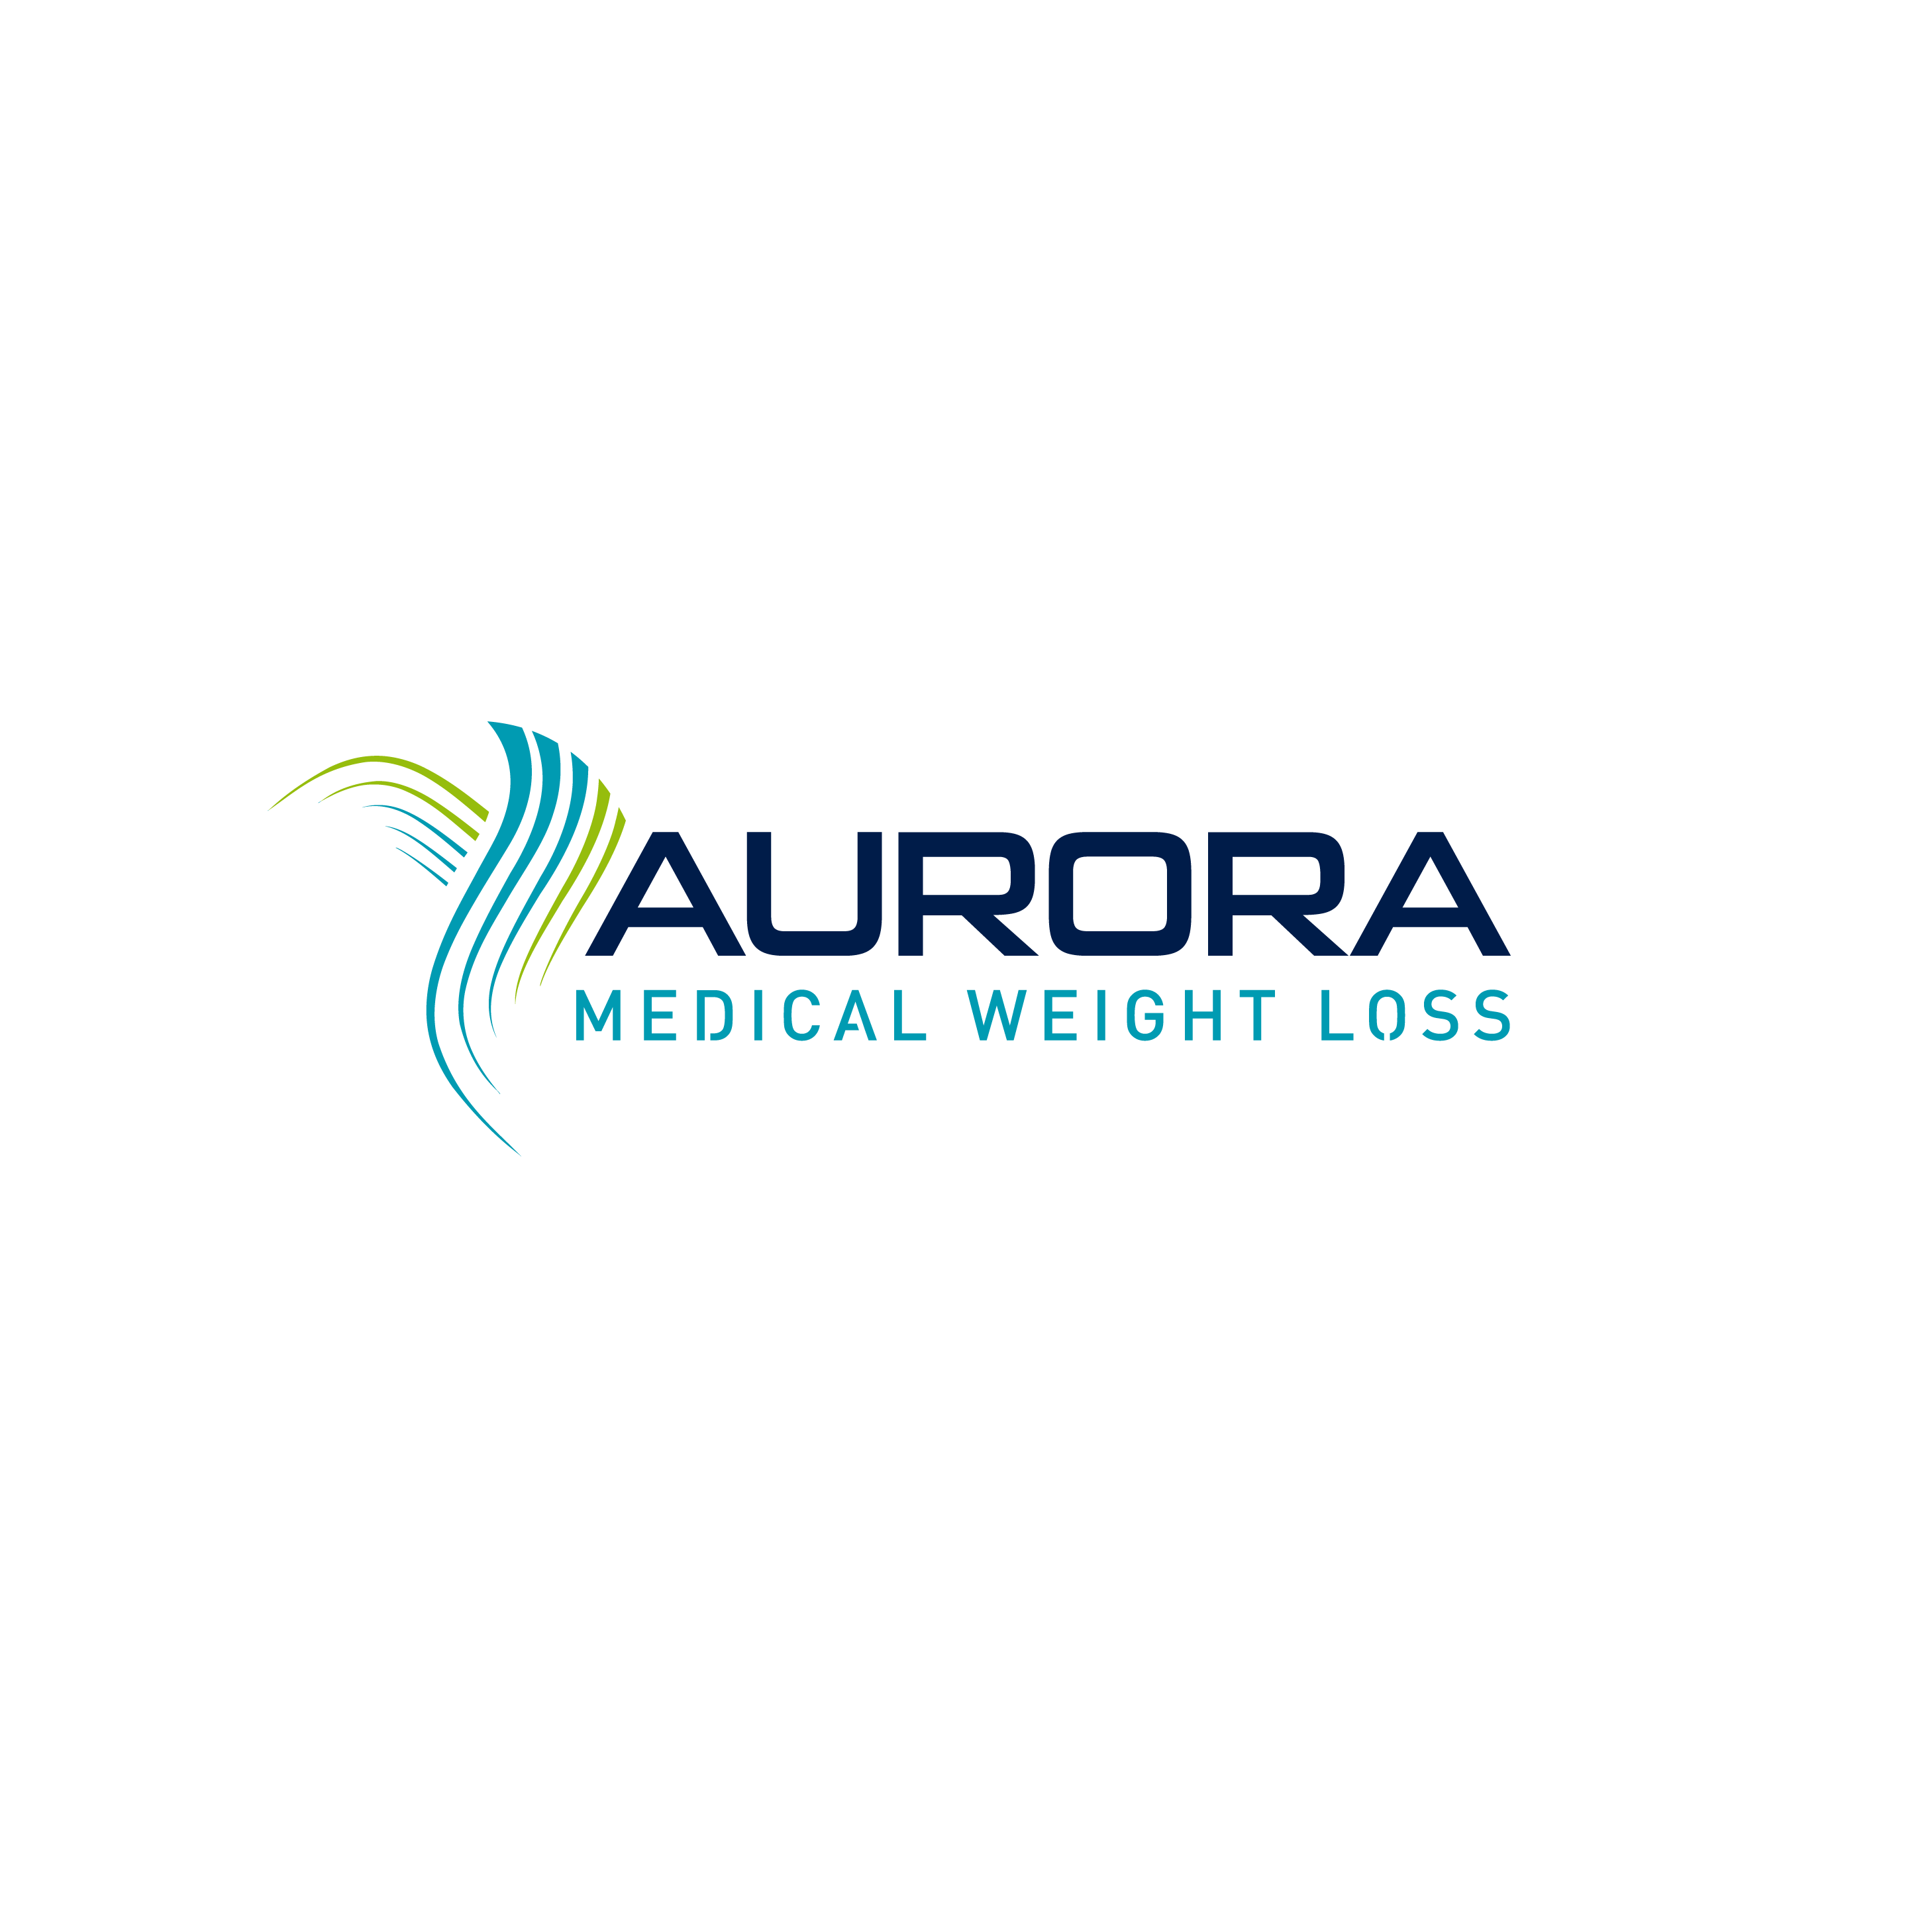 Aurora Medical Weight Loss